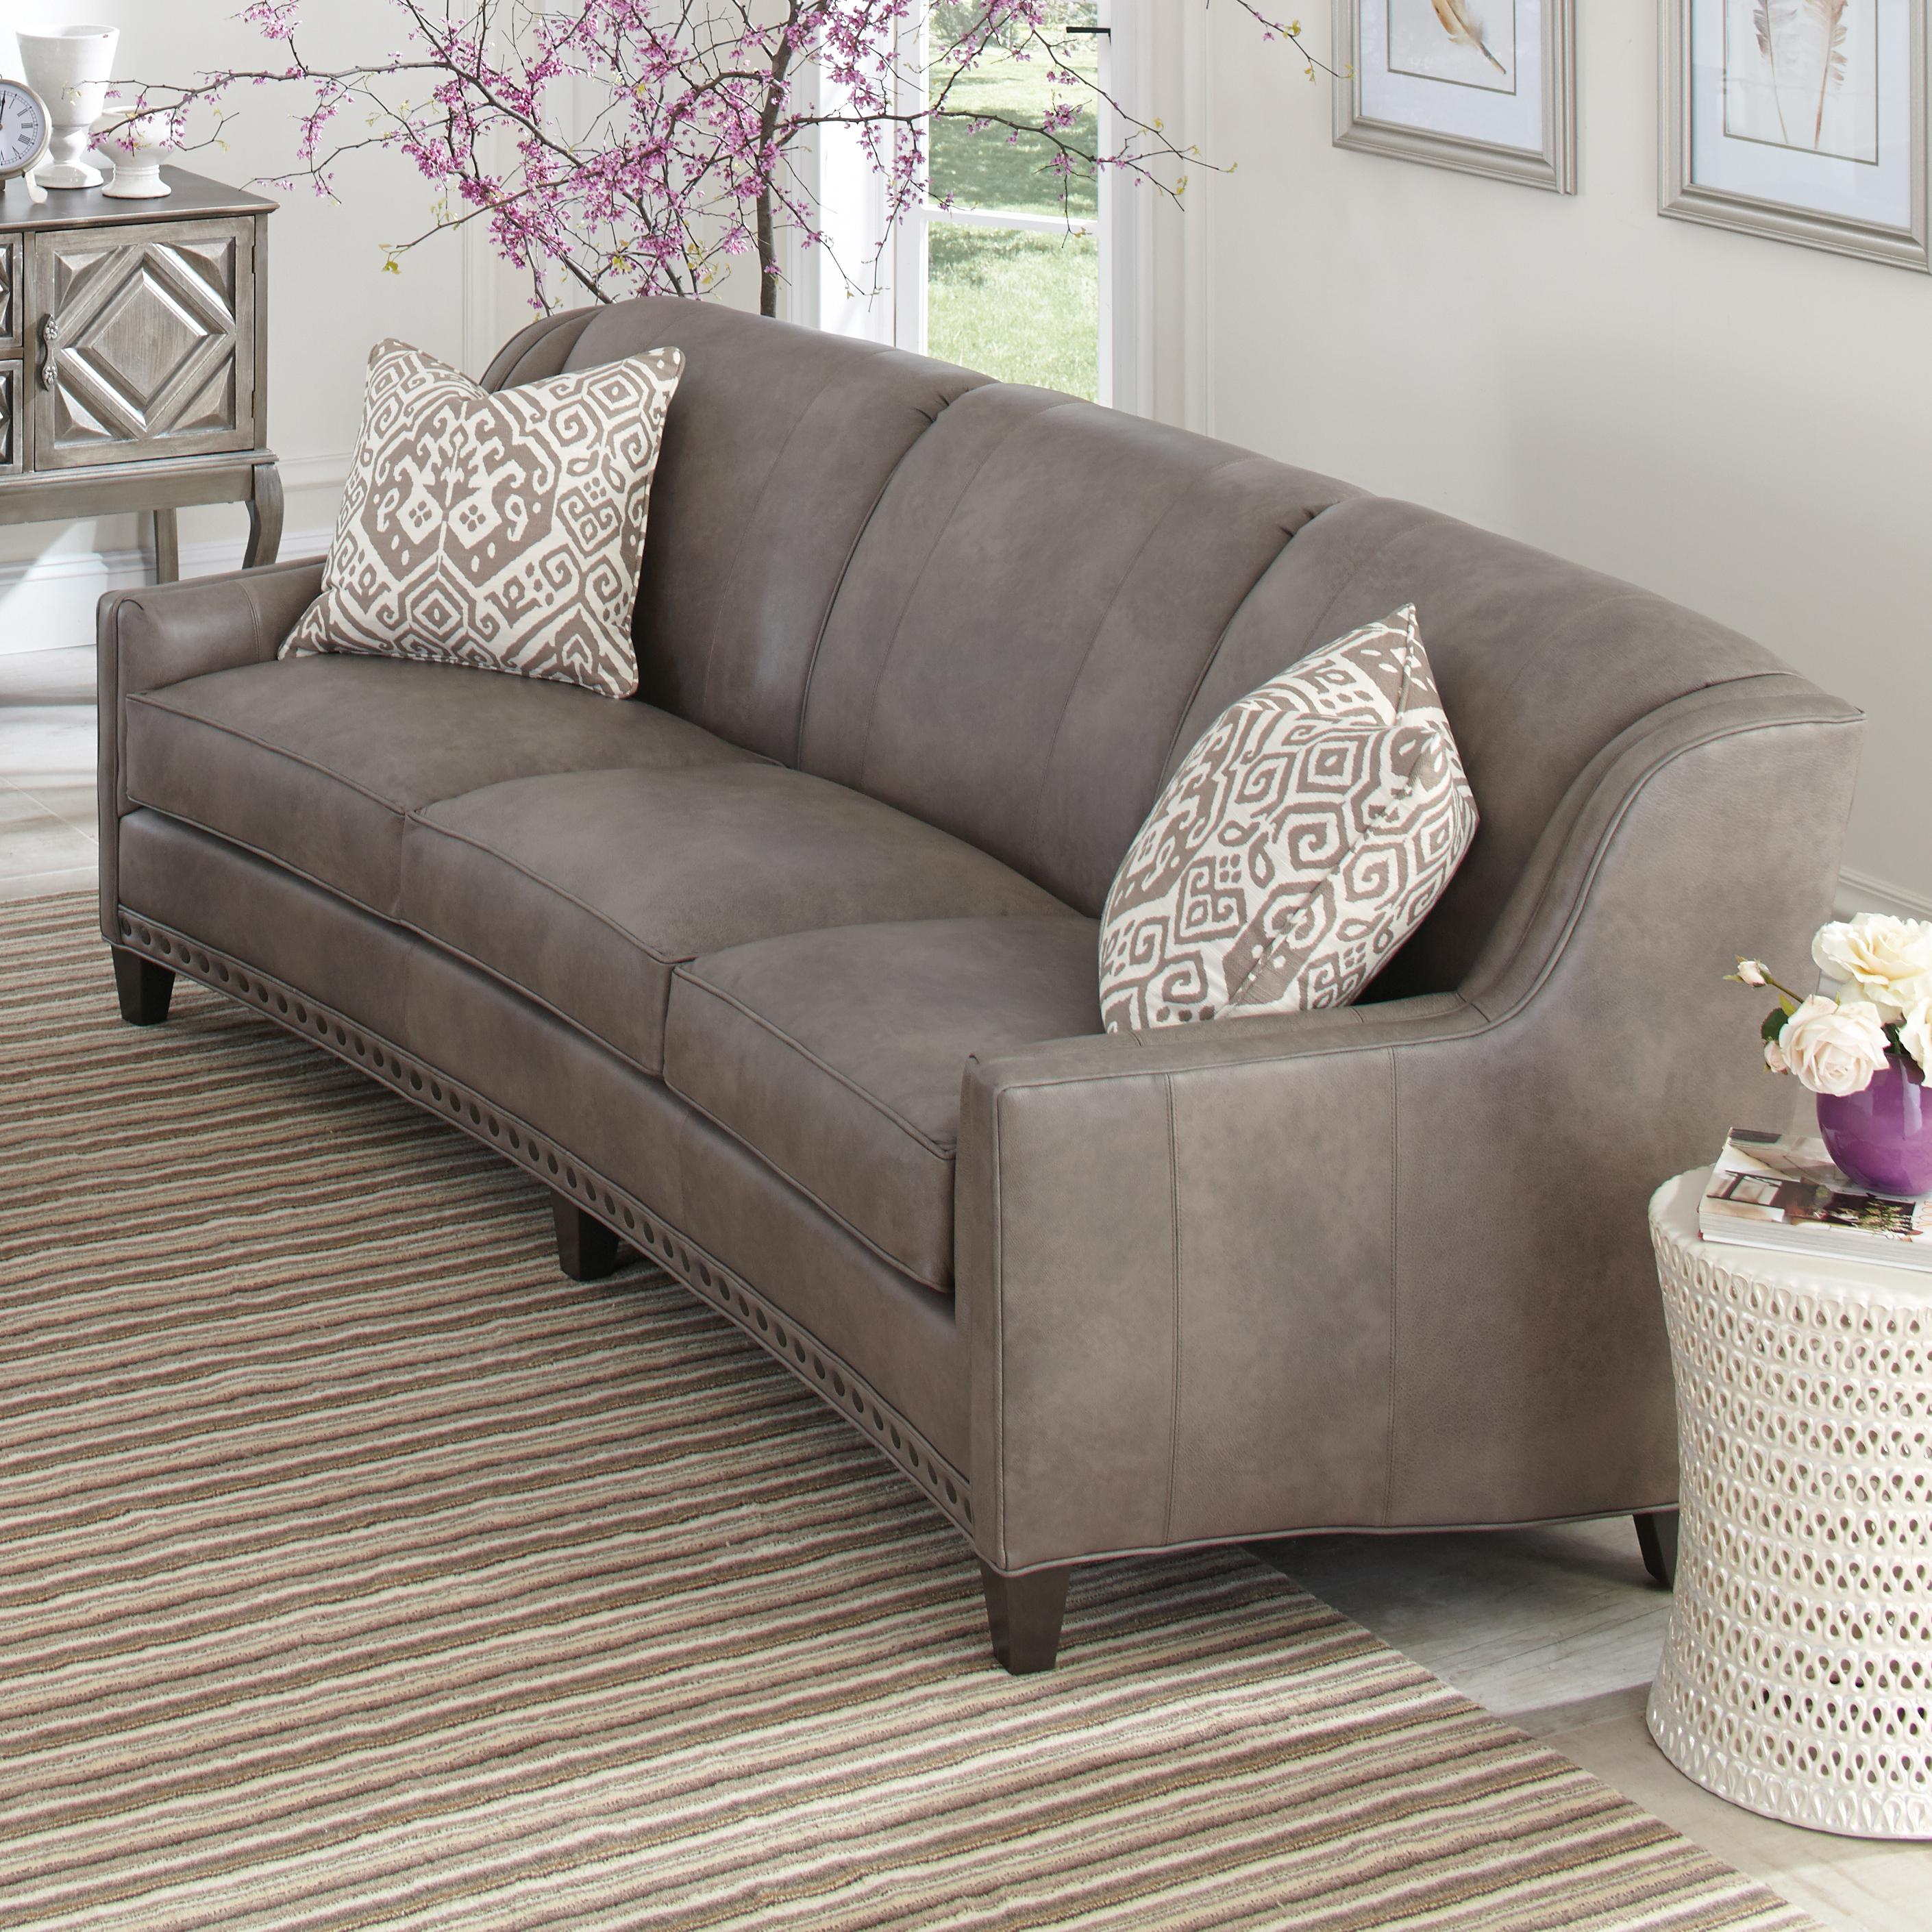 Amazon Sofa Rund Slightly Curved Sofa With Sloping Track Arms And Nail Head